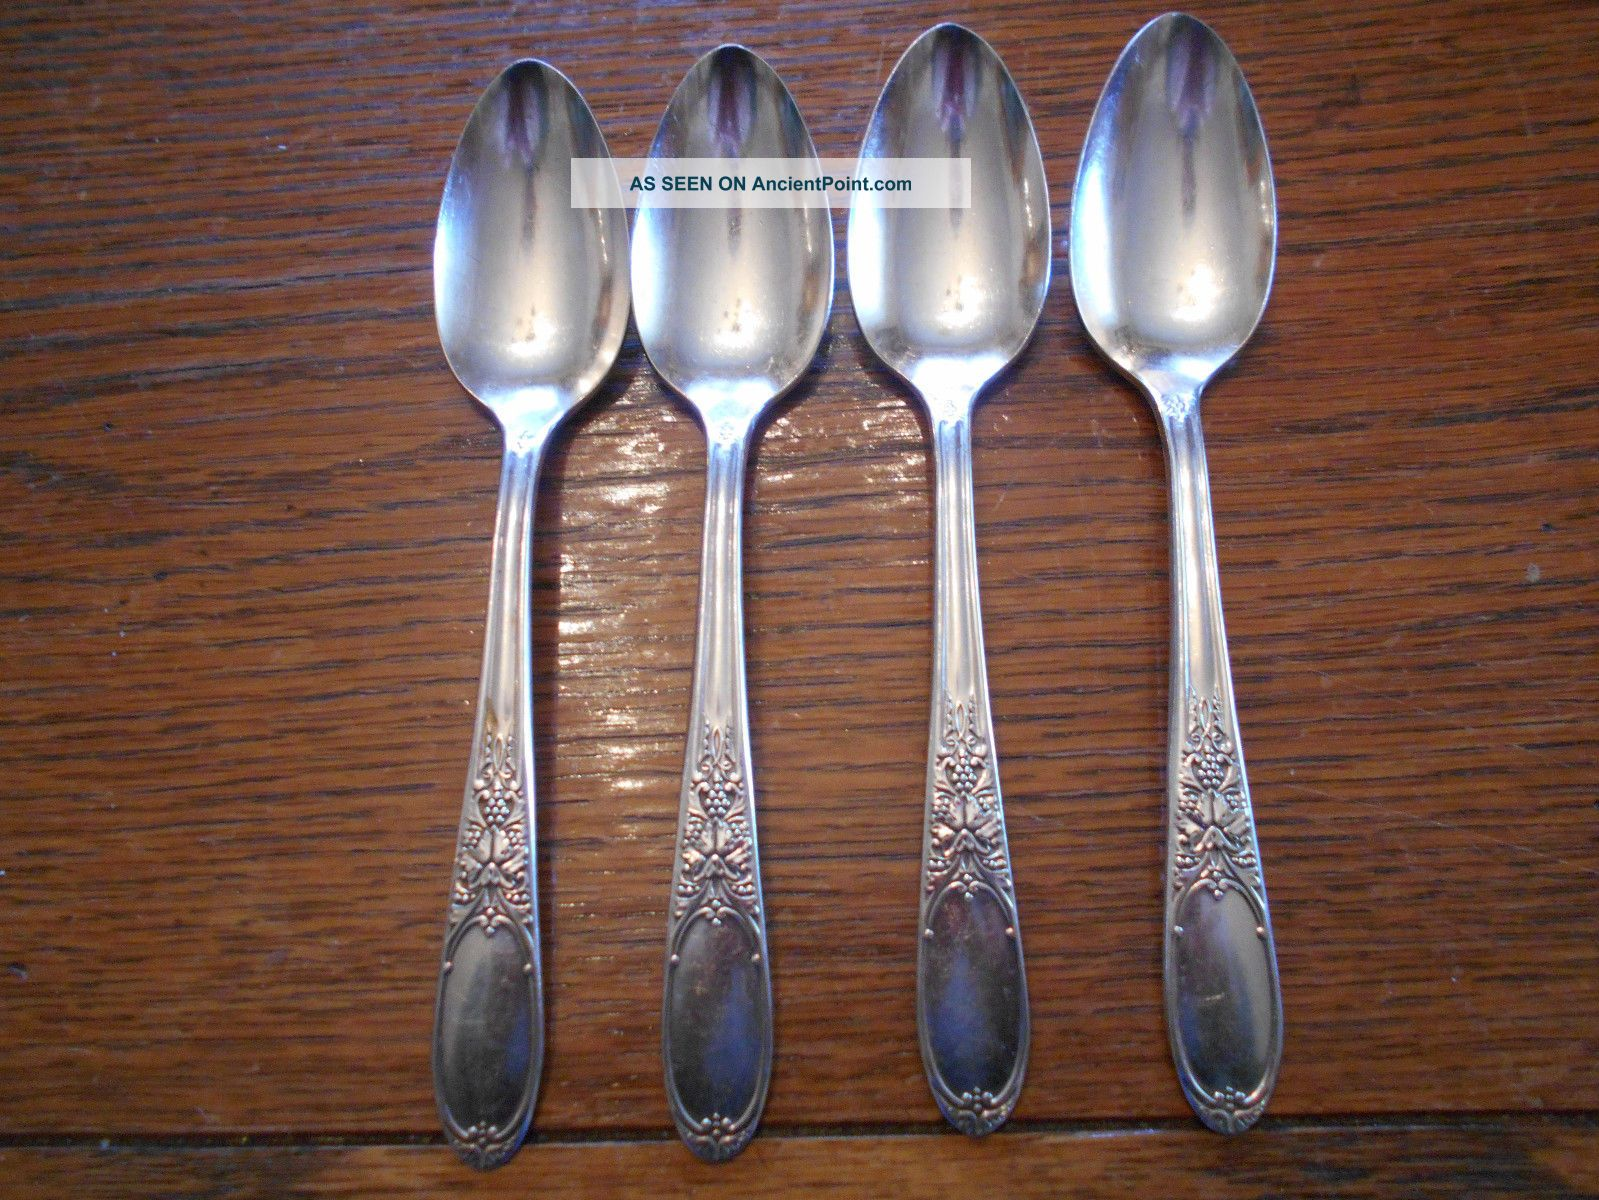 4 Rogers 1934 Burgandy Pattern Teaspoons Is Silverplate Flatware 929 Flatware & Silverware photo